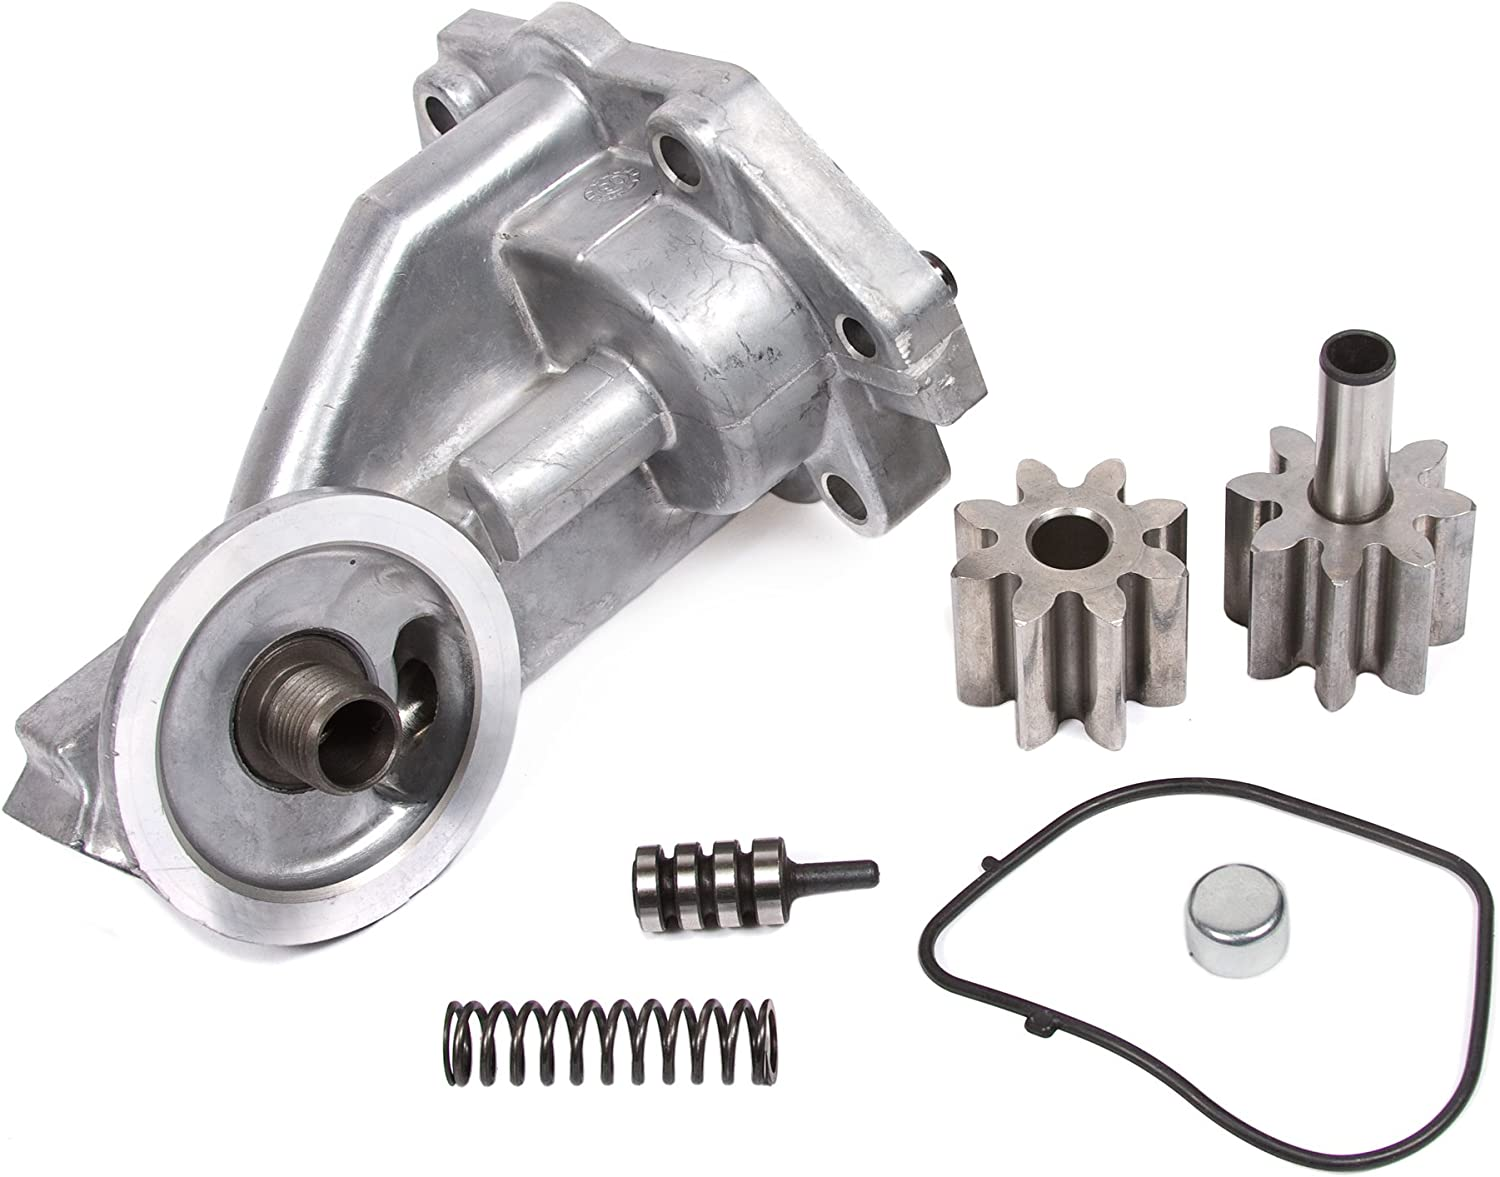 Evergreen TK20500OP Compatible With 90-07 Ford Lincoln Mercury 3.8 3.9 4.2 OHV 12 Valves Timing Chain Kit Oil Pump